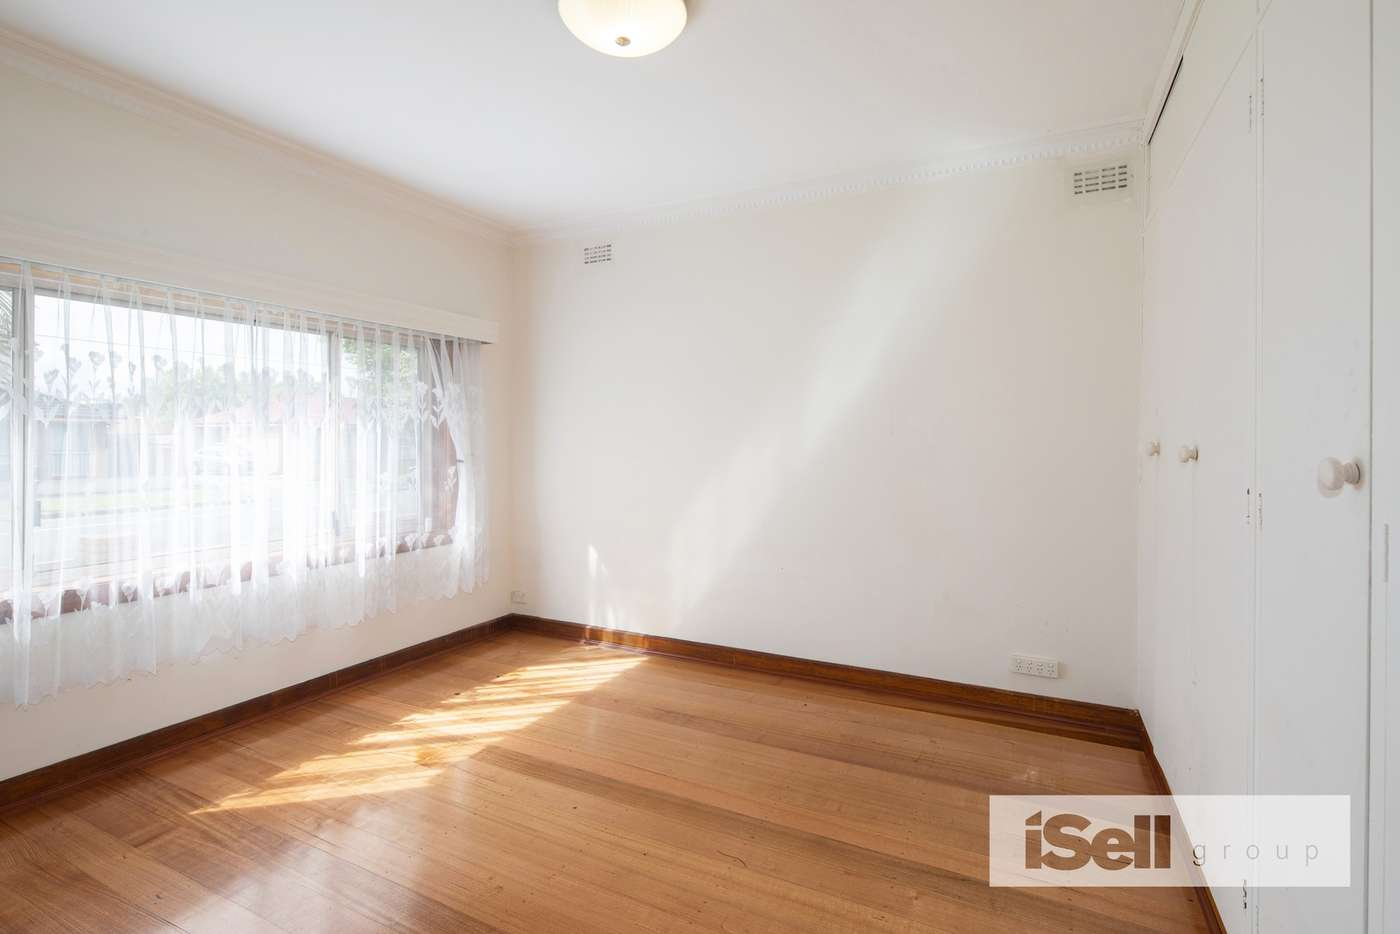 Seventh view of Homely house listing, 12 Osborne Avenue, Springvale VIC 3171